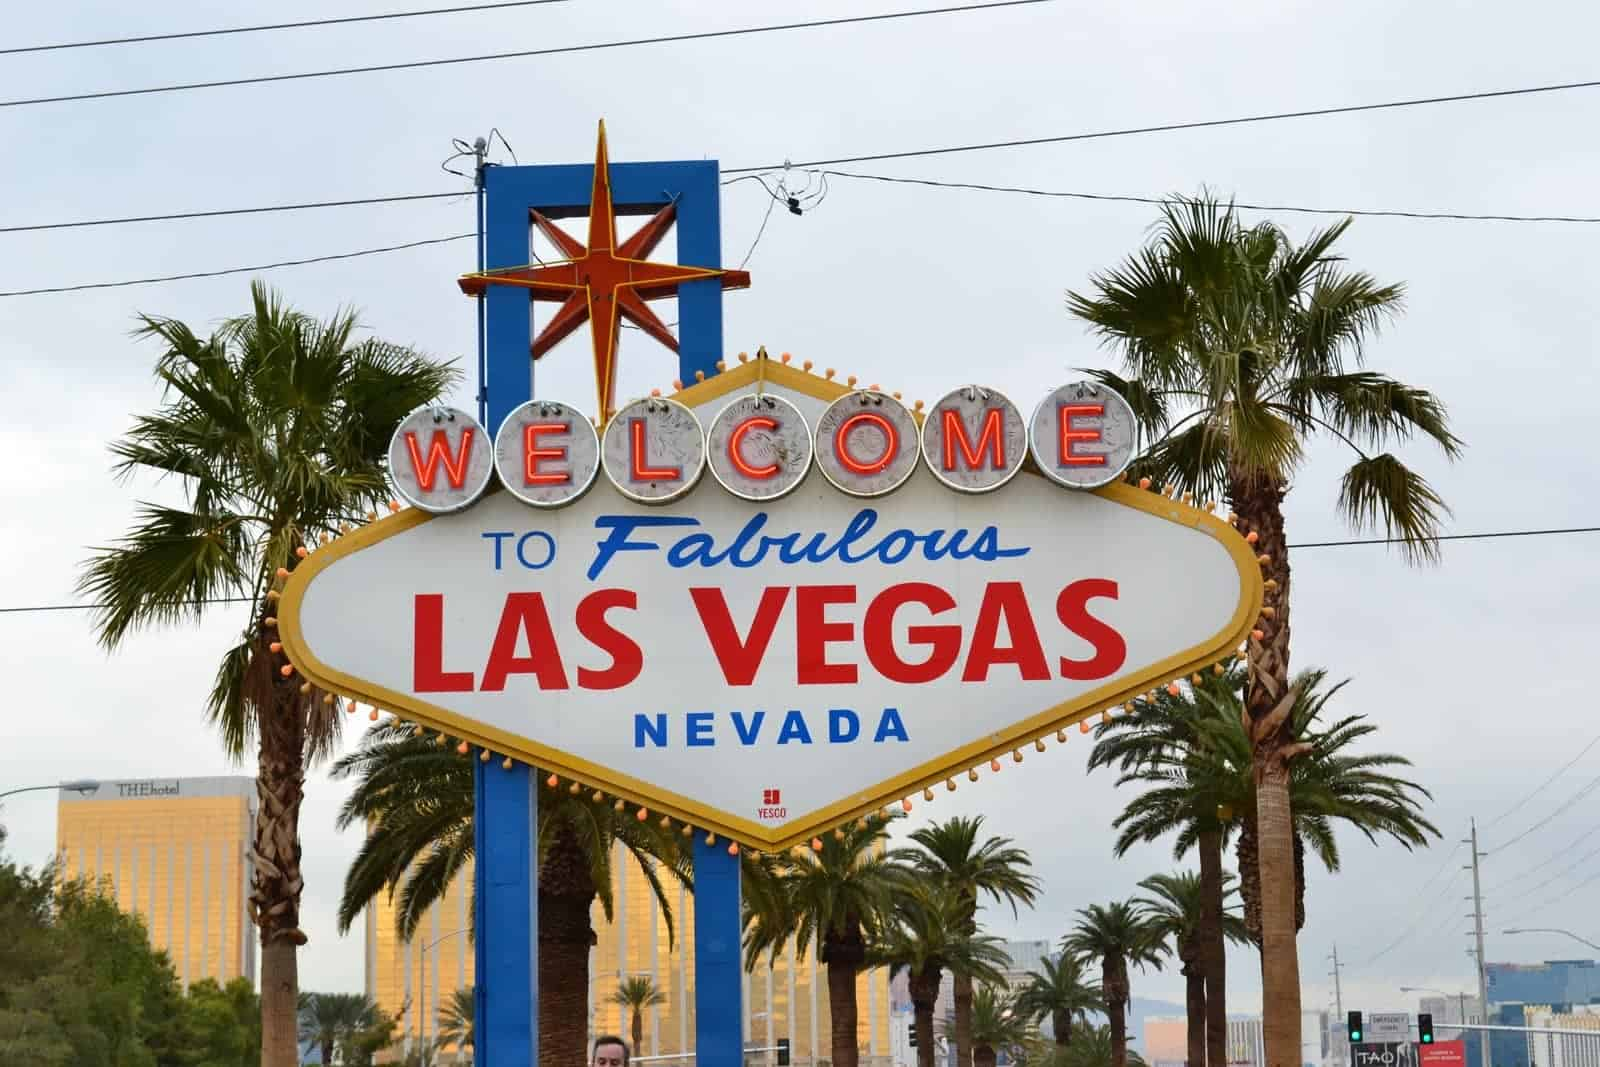 Tour Las Vegas and California